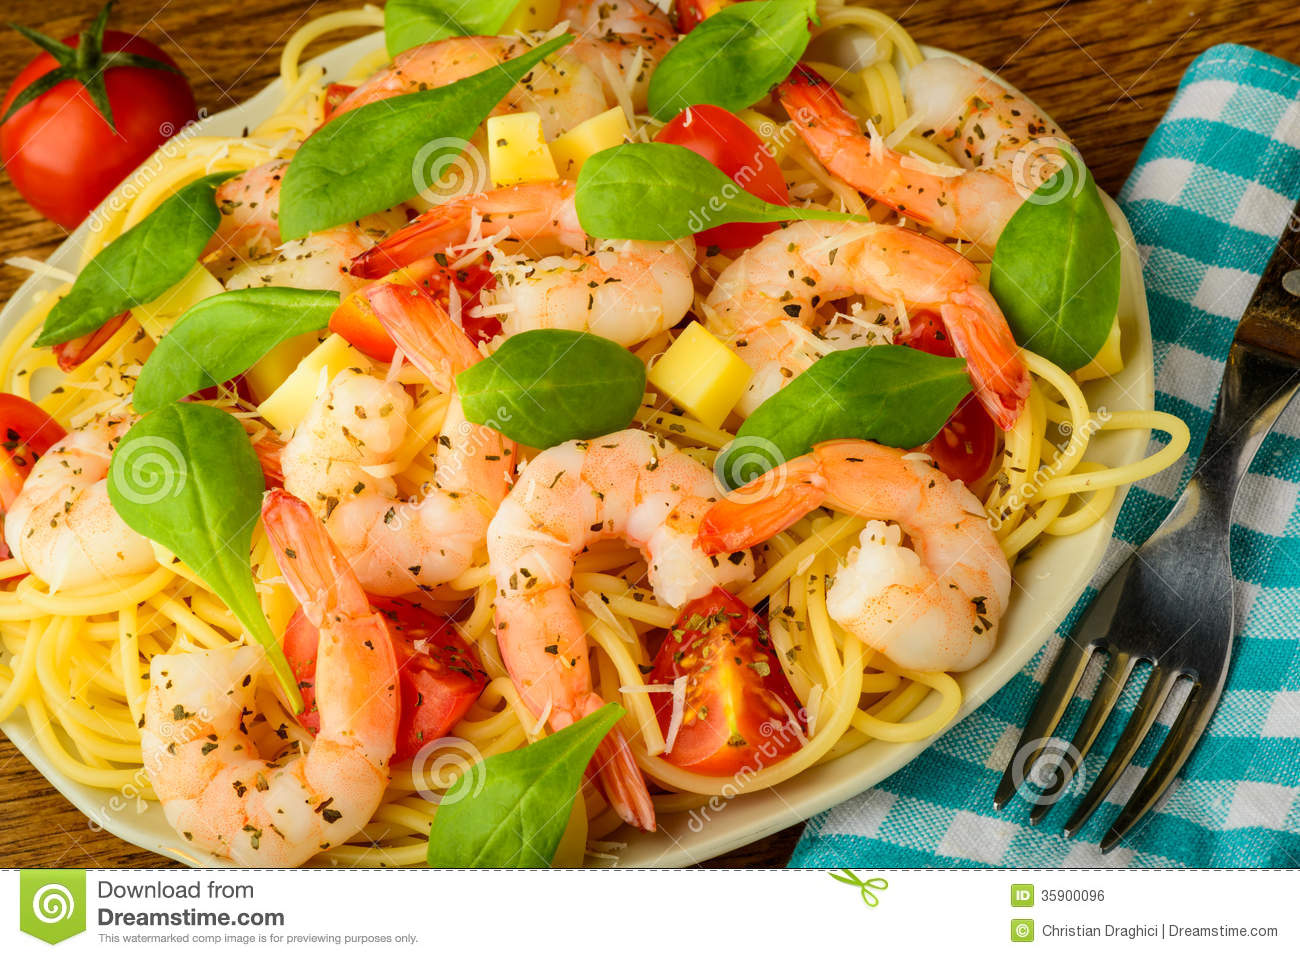 charming healthy seafood Part - 2: charming healthy seafood good ideas